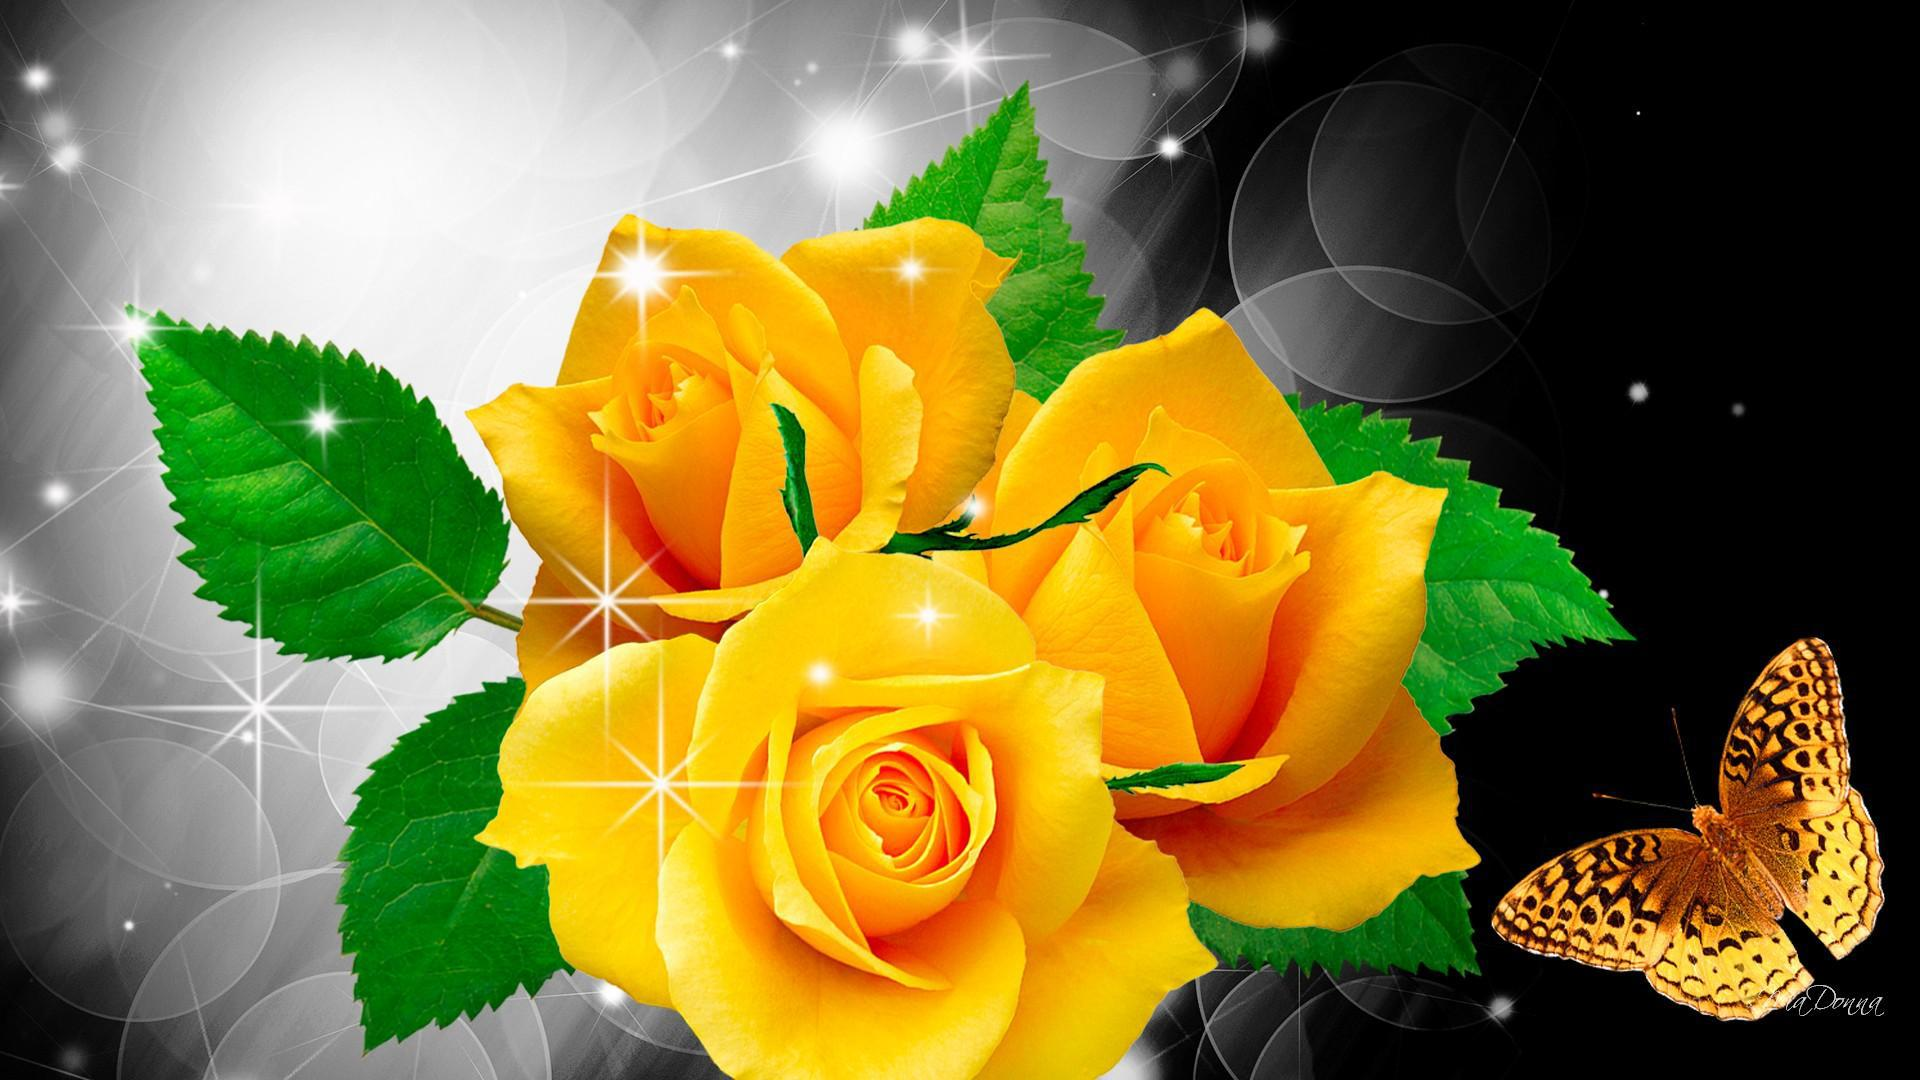 Hd wallpaper yellow rose - Yellow Roses And Butterfly Wallpapers And Images Wallpapers